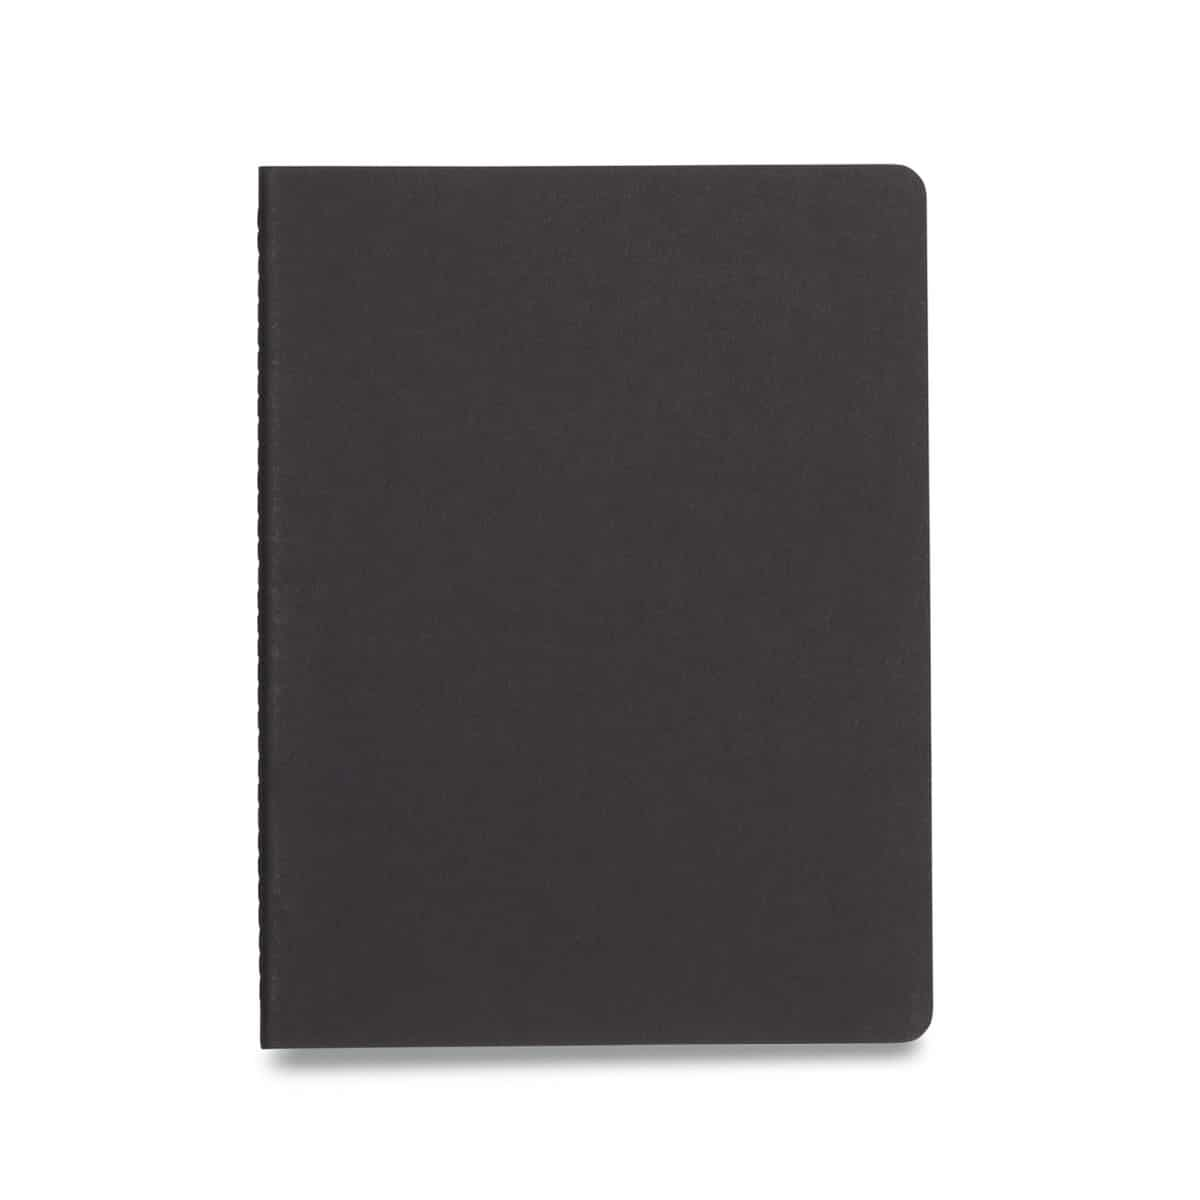 Moleskine Cahier Journals - 7.5 x 9.75 inches - Individual Notebook - by Moleskine - K. A. Artist Shop